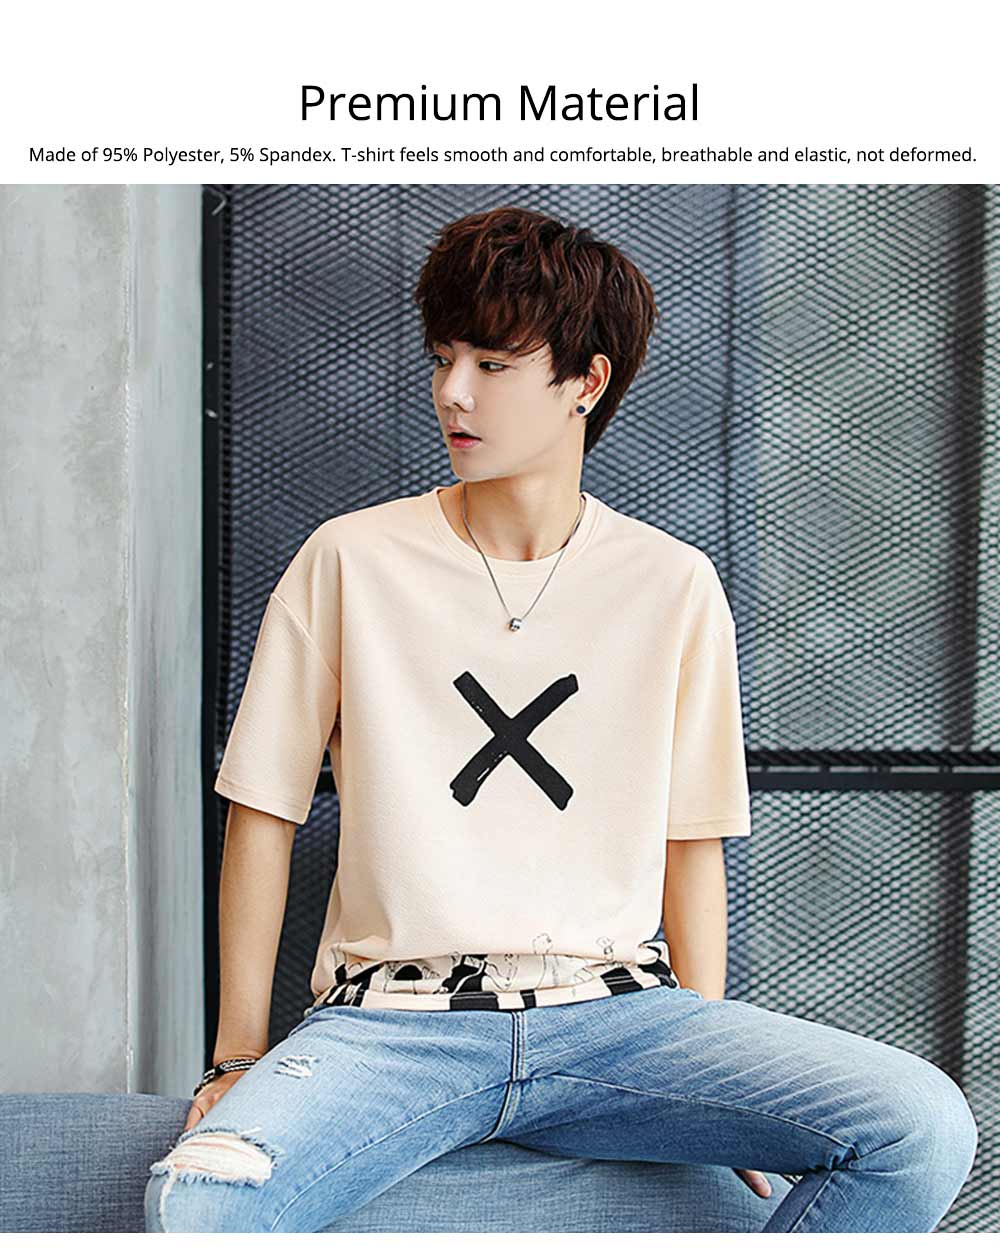 Men's Casual T-shirt, Short Sleeve Men's Tees, Fashion Stretch Creative Pattern Quick-dry T-shirts for Men 3